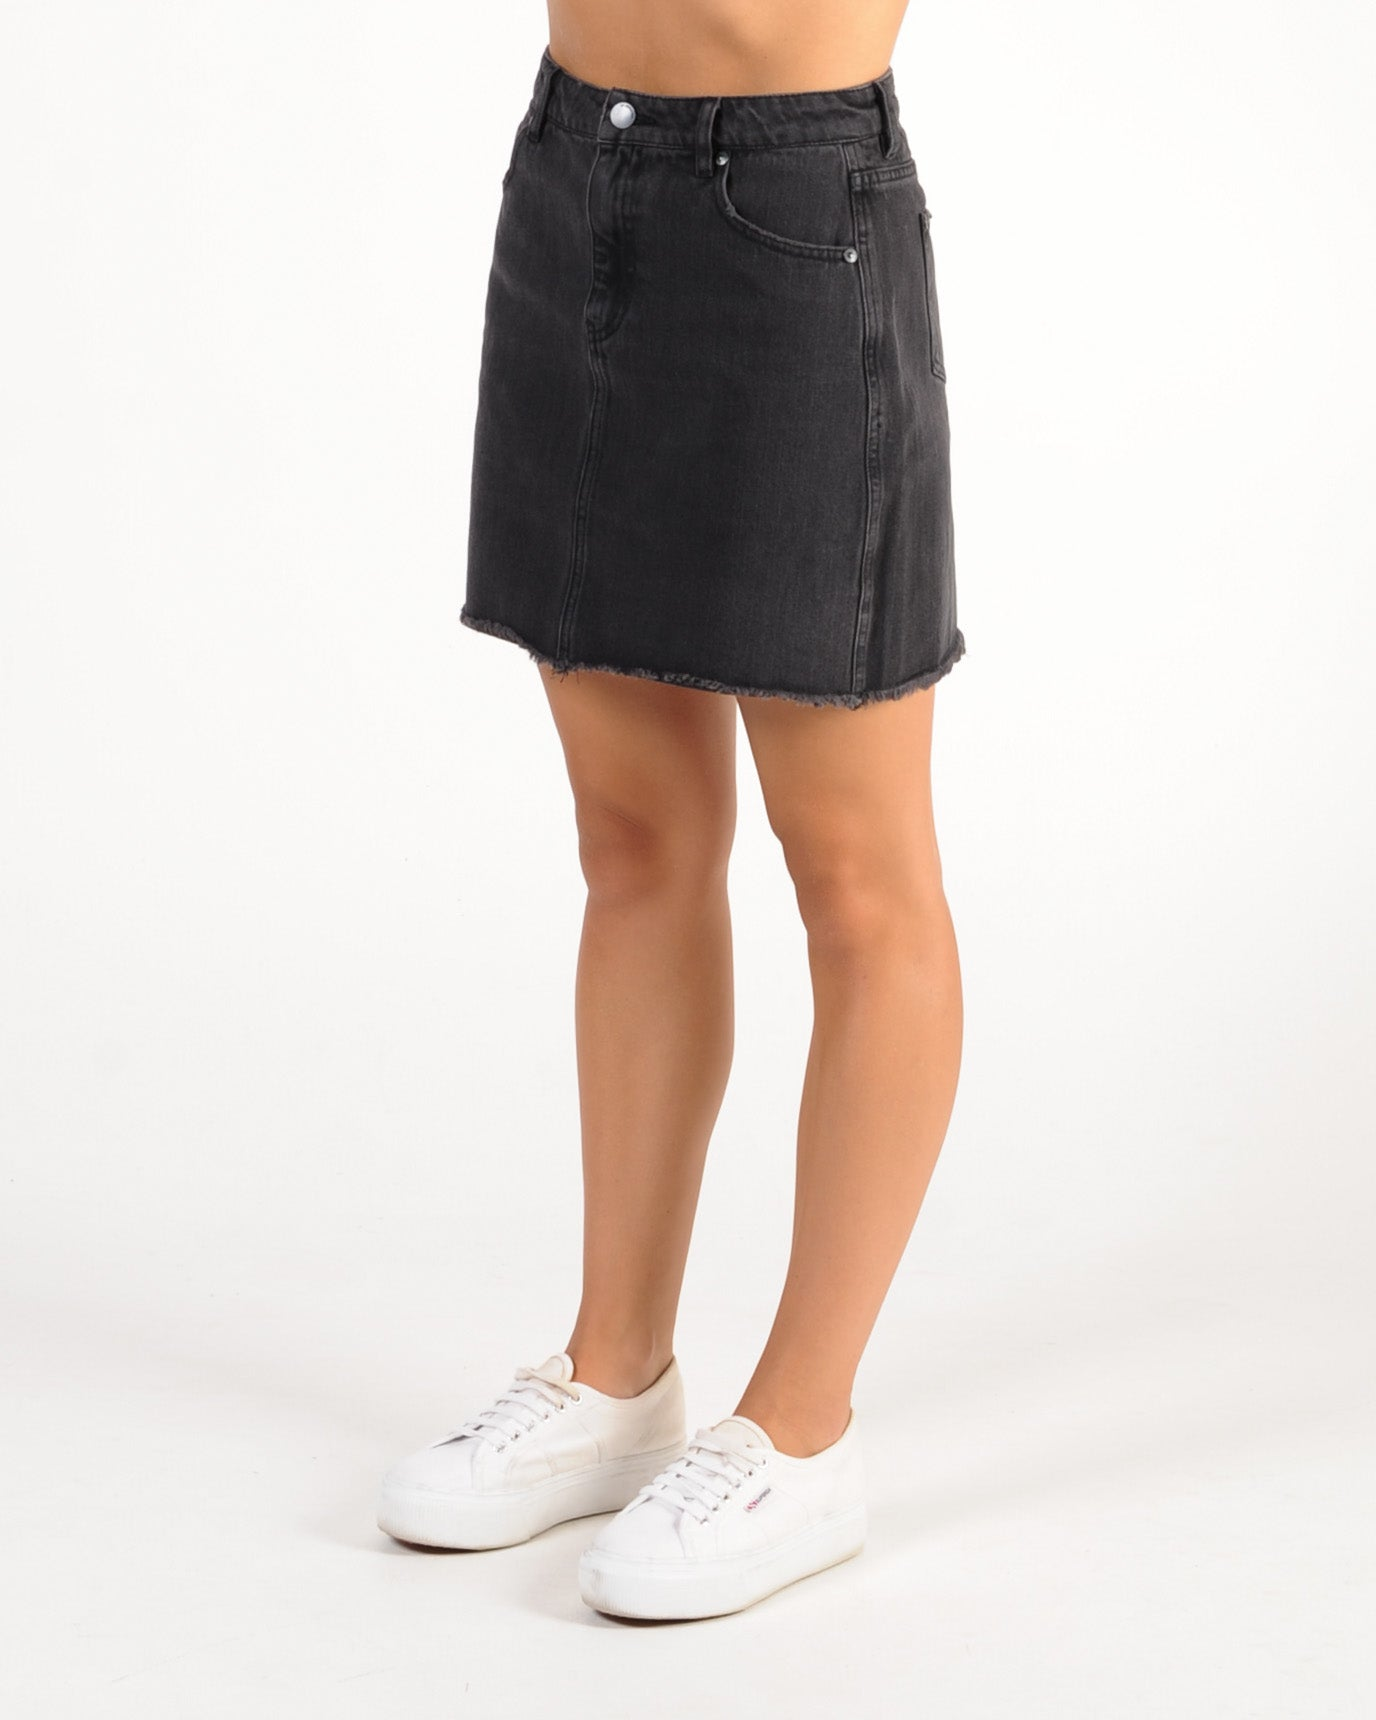 All About Eve Isla Denim Skirt - Black Denim